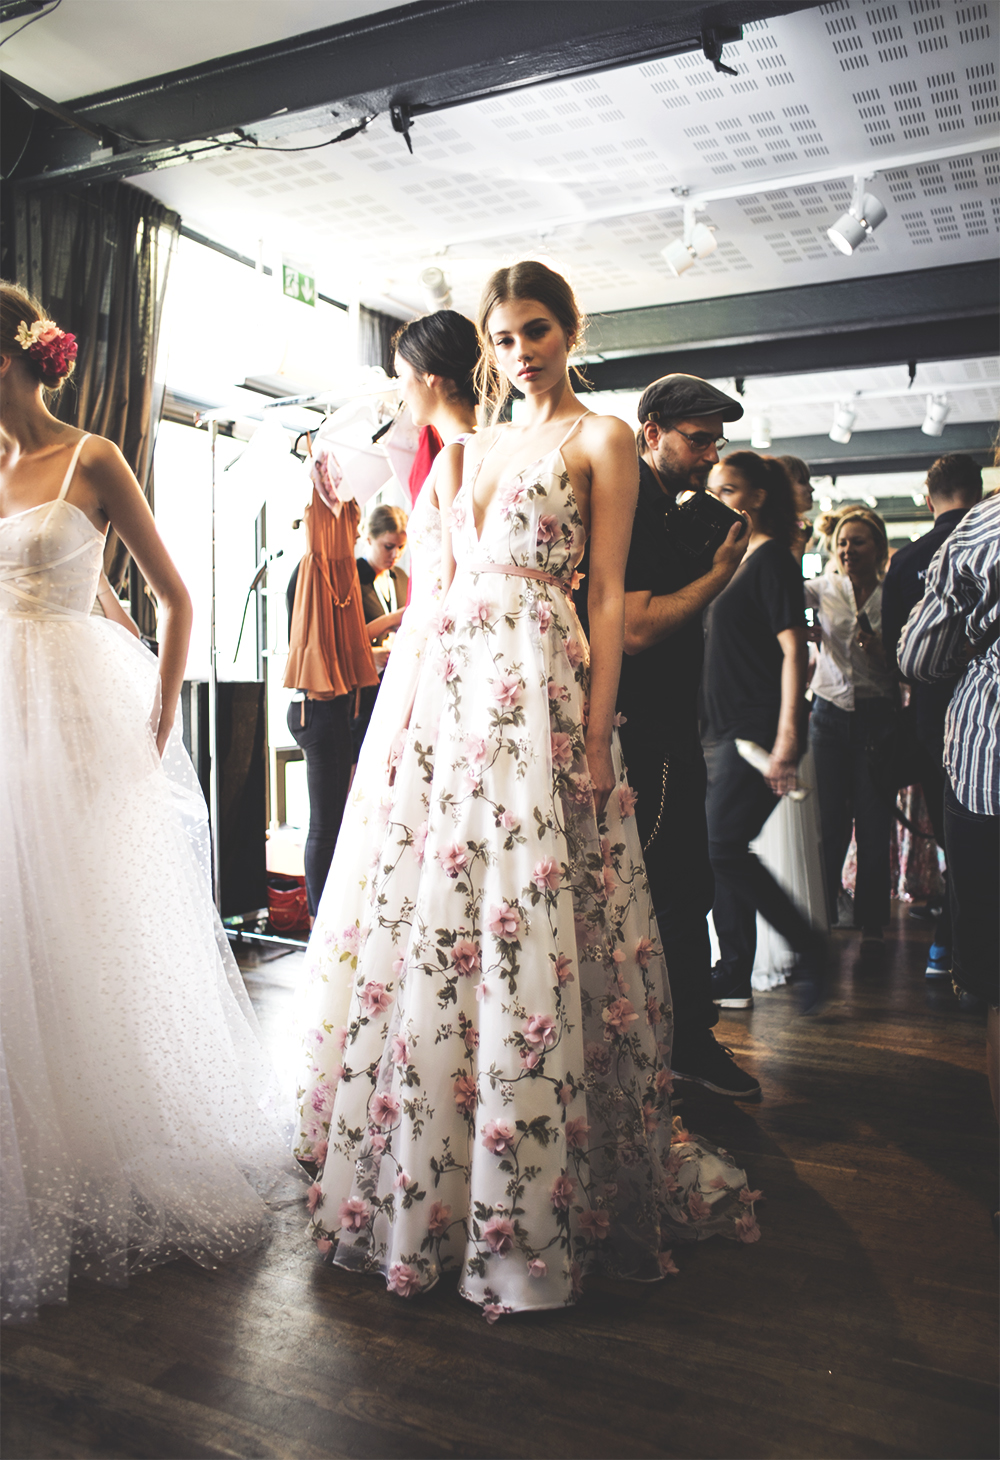 sania claus demina backstage ida sjostedt ss16 floral dress blommig klanning ss16 stockholm fashion week_1